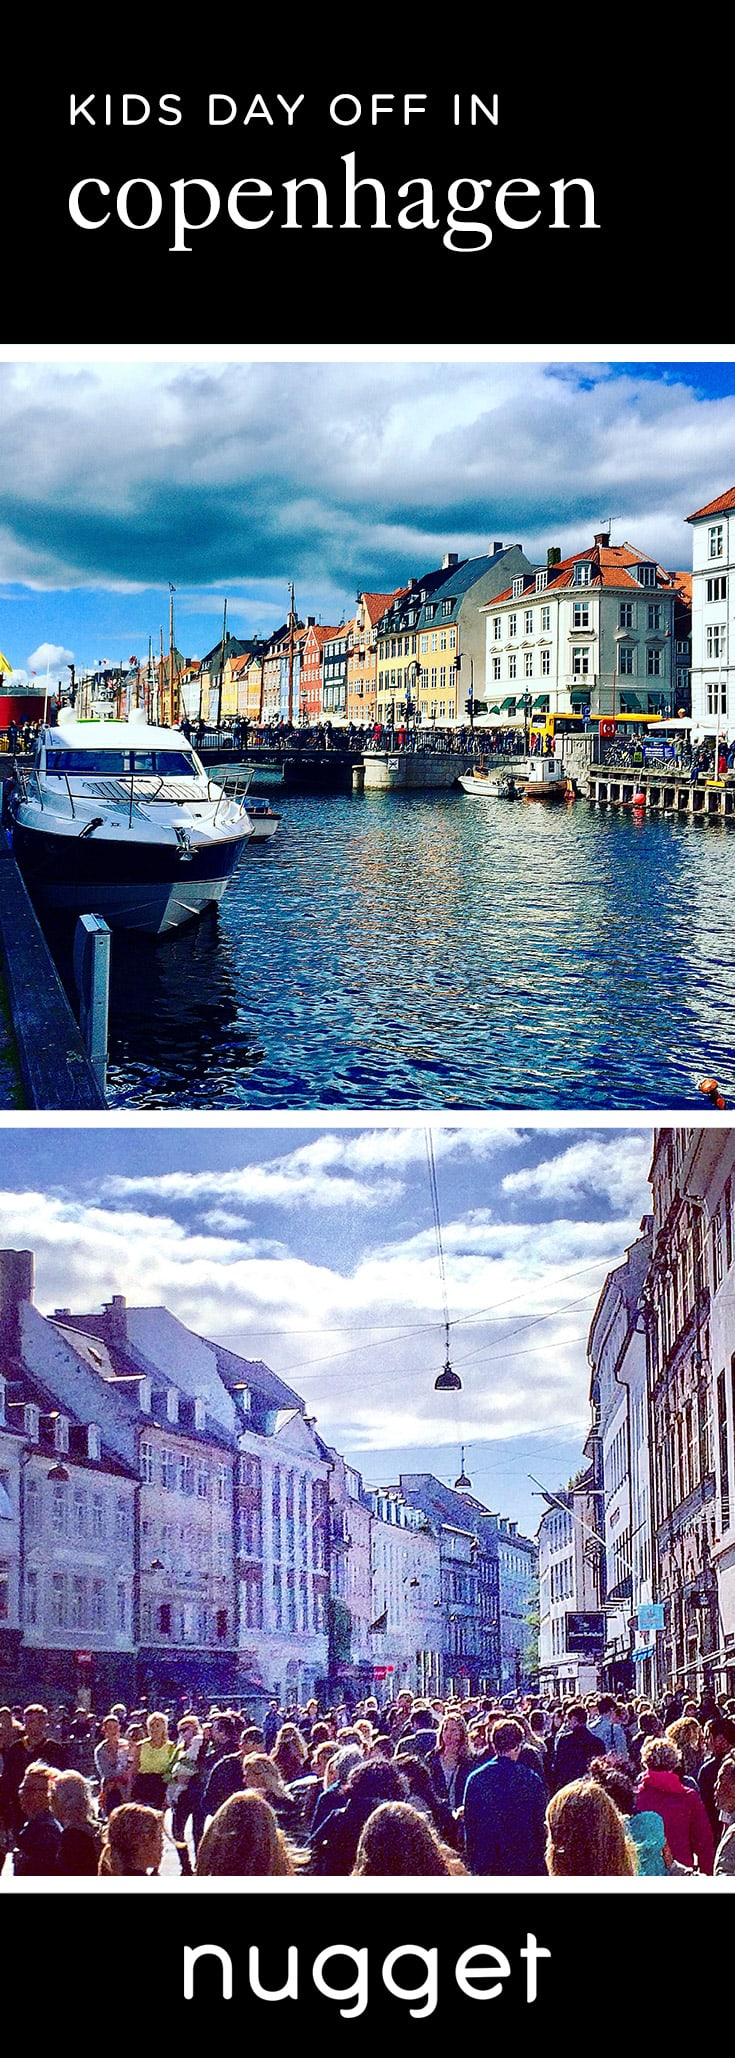 Kids Day Off in Copenhagen: Nyhavn, Tivoli and Lego